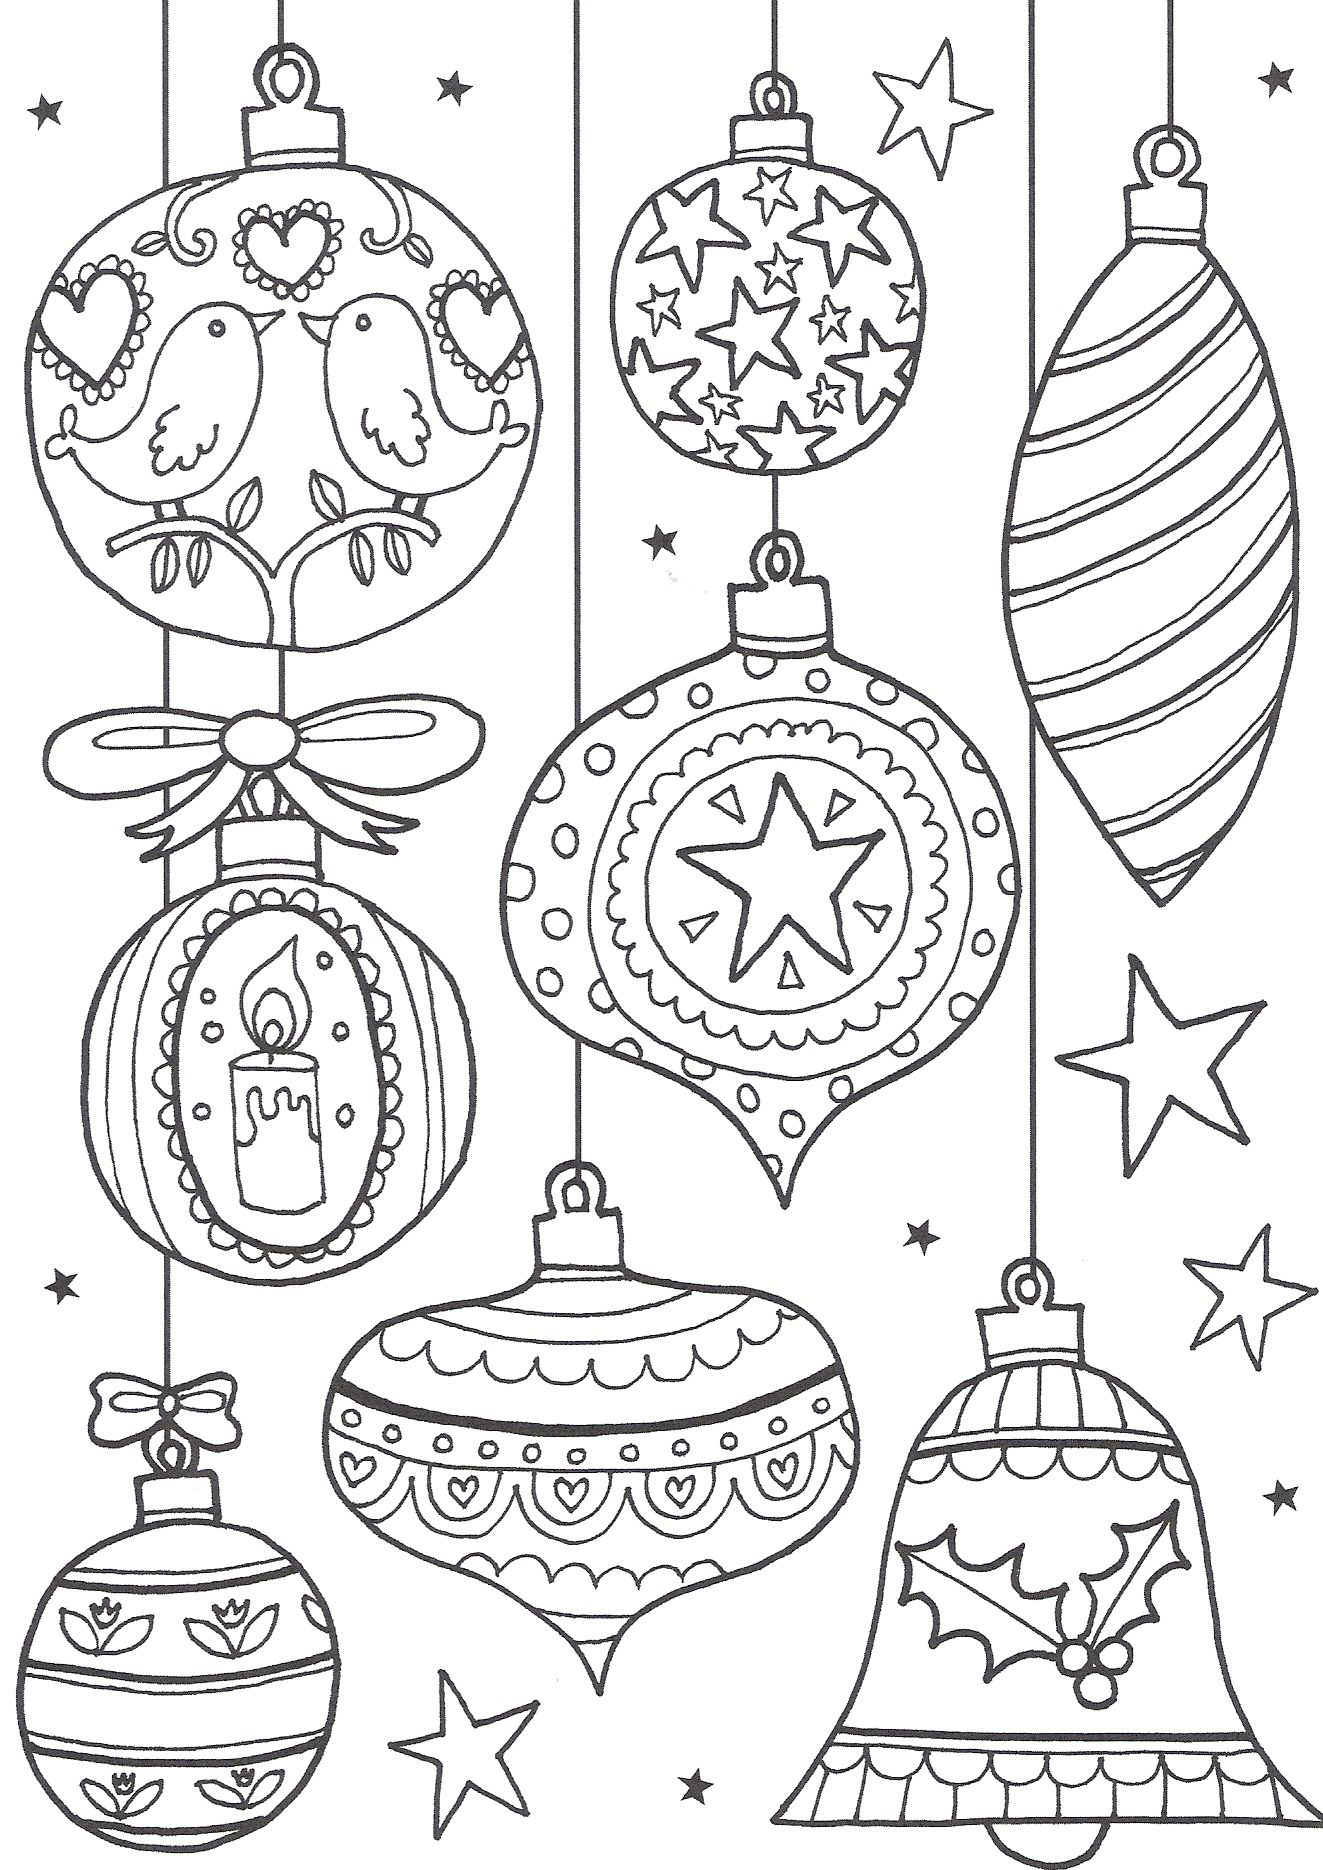 Christmas Colouring Pages That You Can Print With Free For Adults The Ultimate Roundup